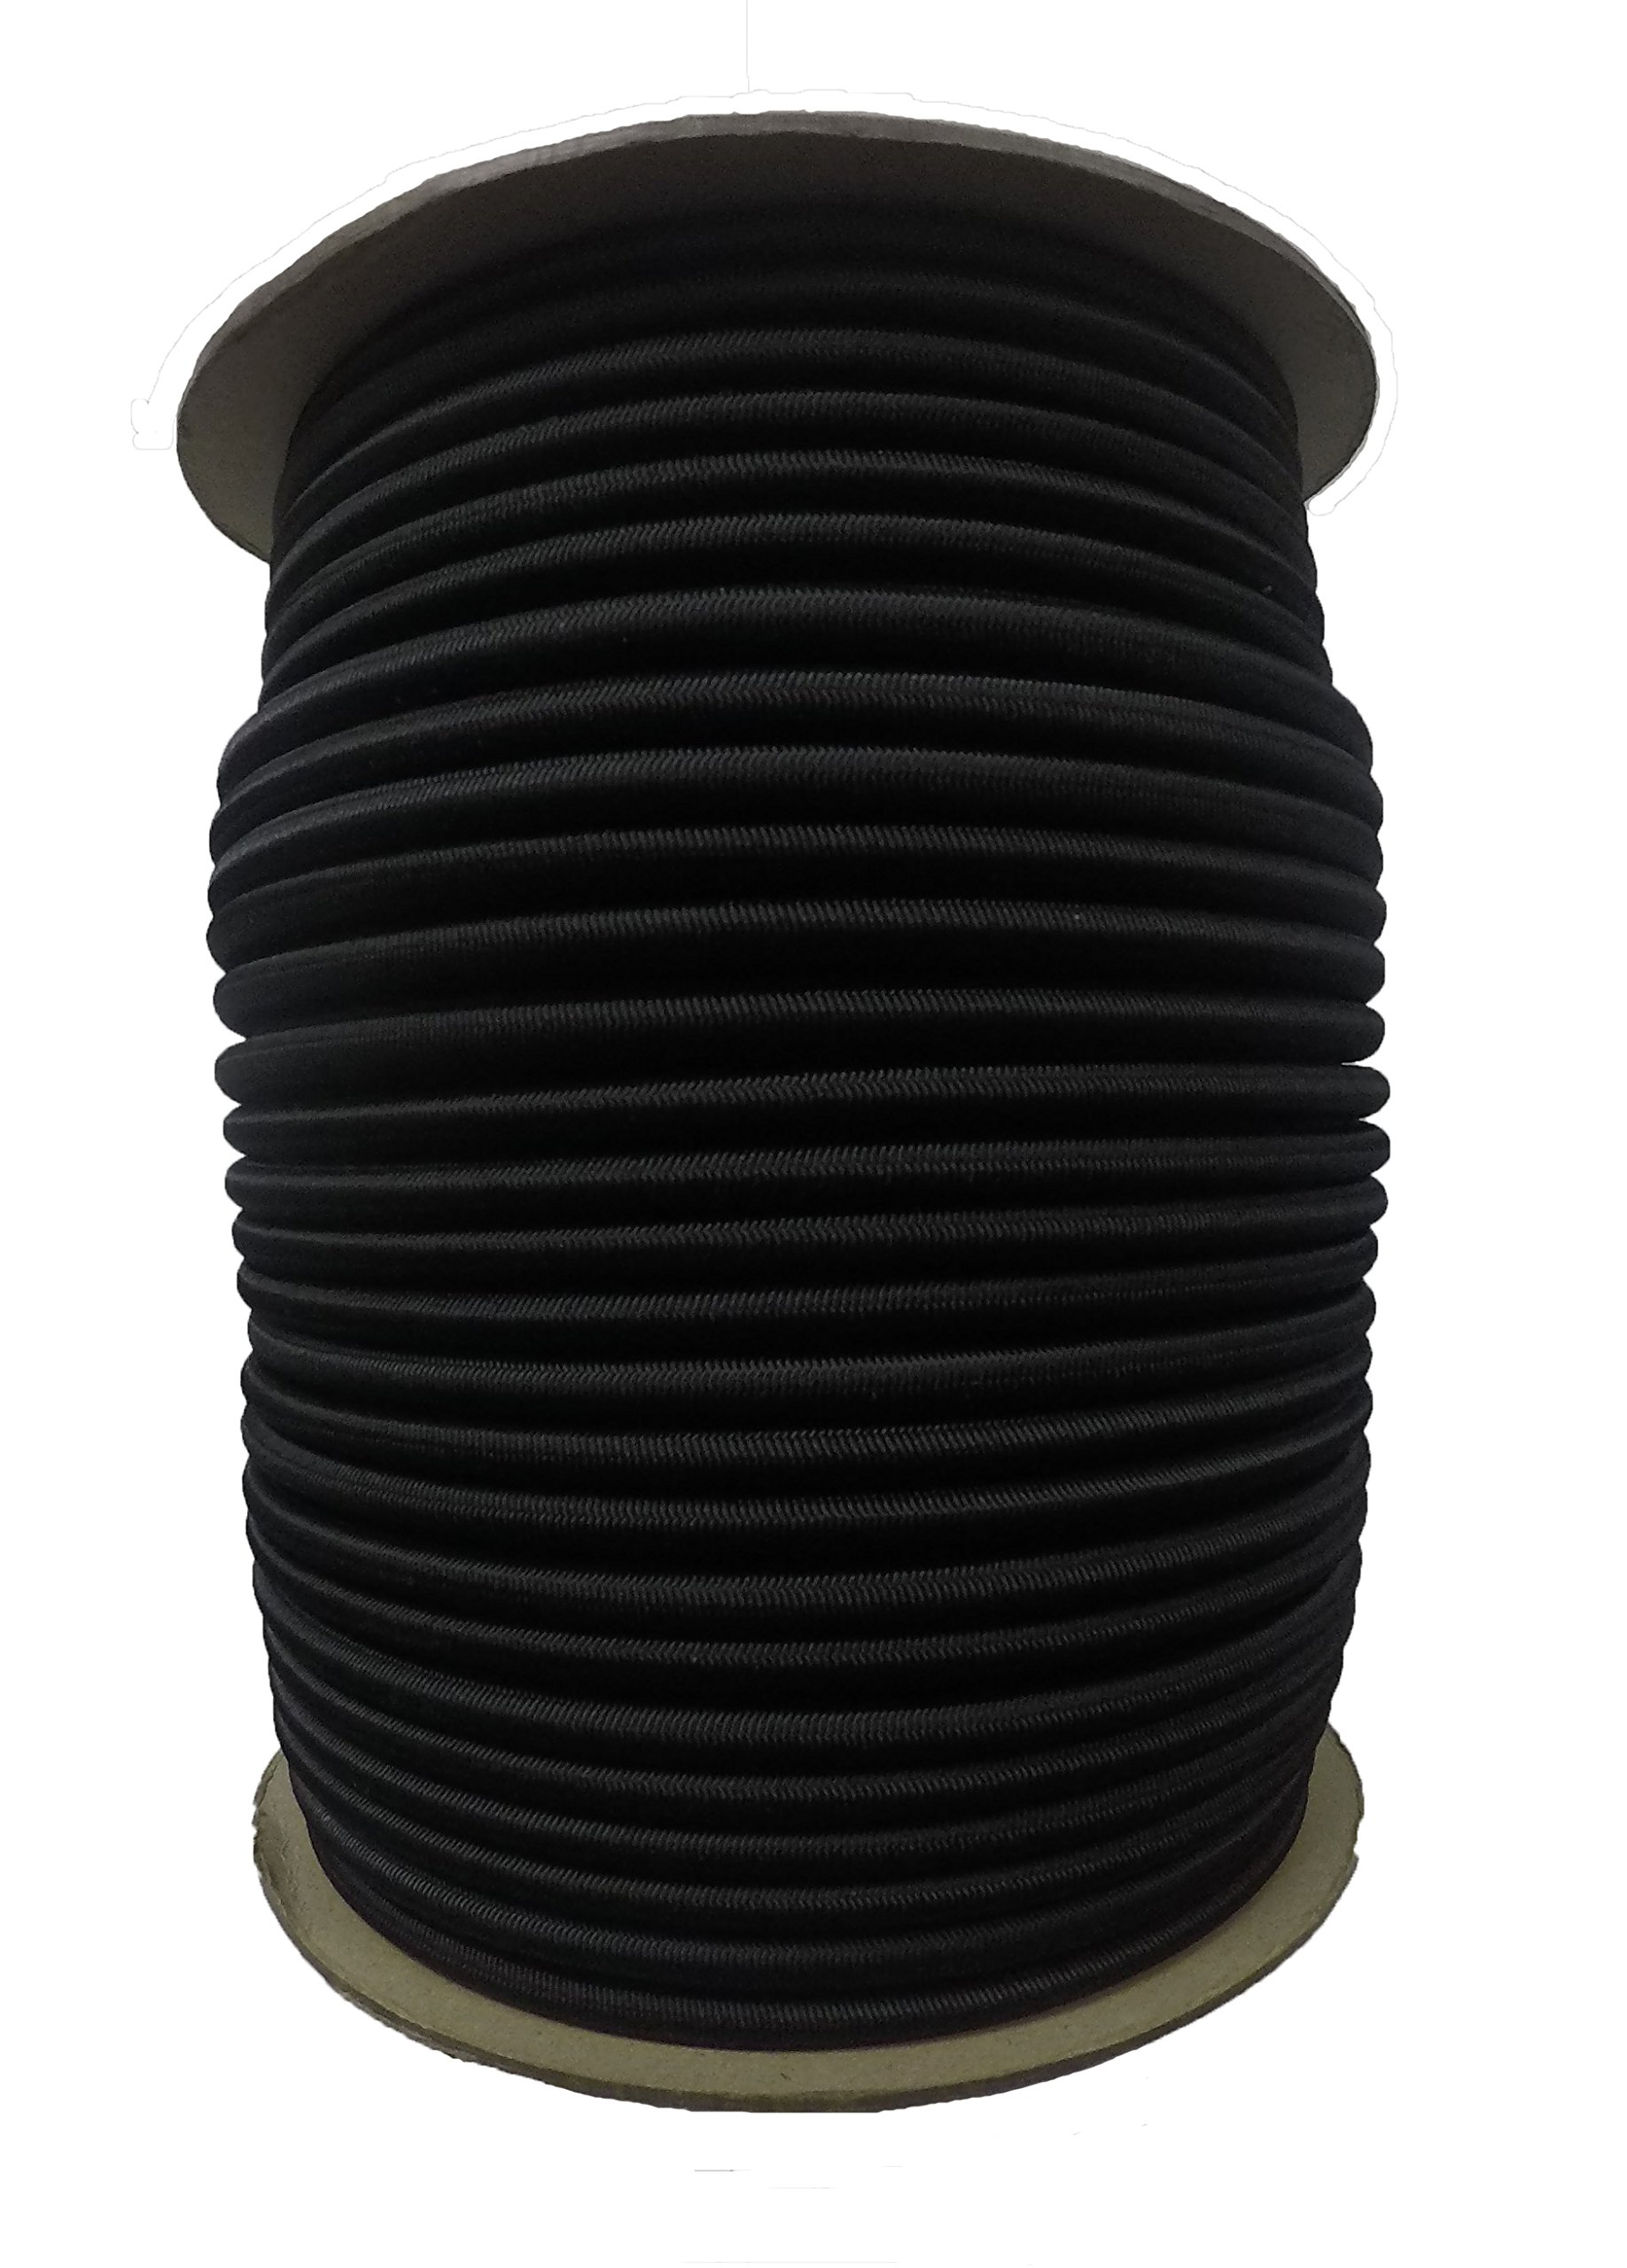 3/8'' x 50 FT. Shock Cord - BLK